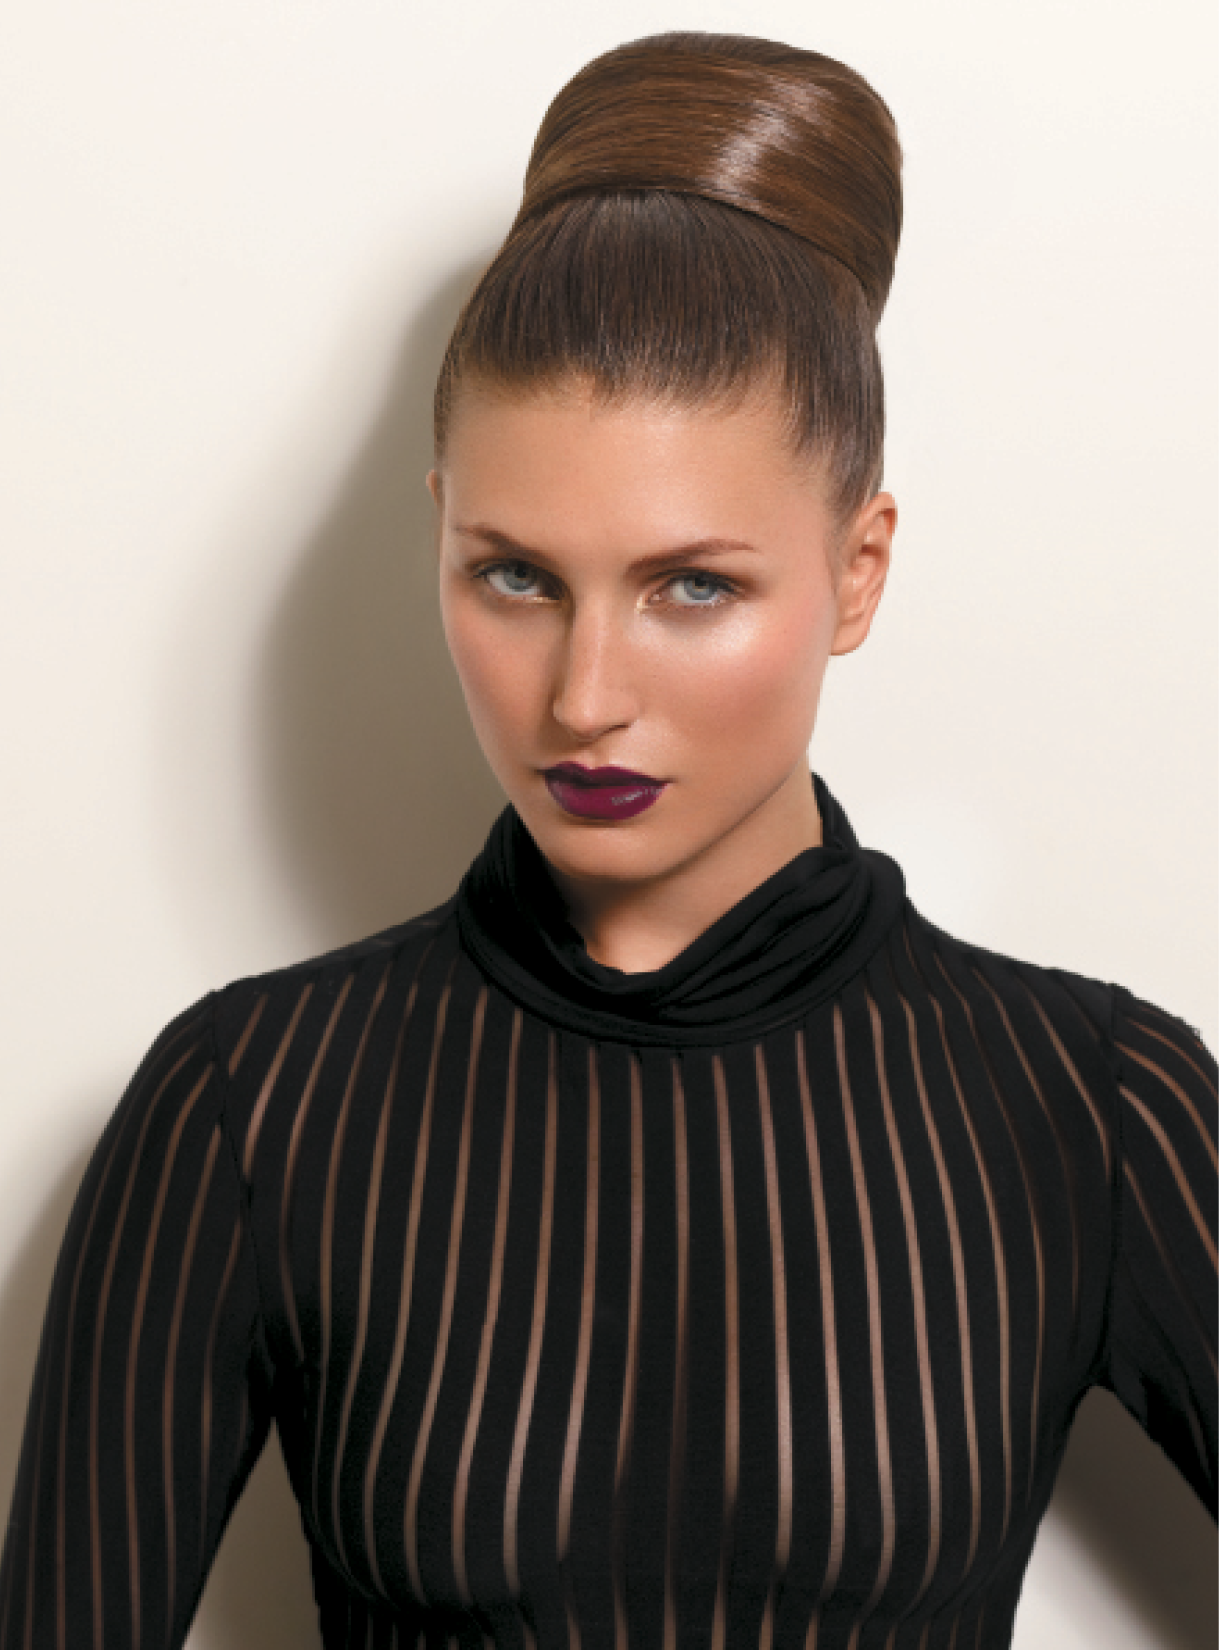 To create this majestic top knot, Lucie Doughty pulled the hair into a high ponytail that she affixed with two bobby pins and a hairband. After securing additional padding with pins from her Straight Pin Studio Big Bun Trend Kit, Doughty folded the hair over the padding before wrapping it around to form a large bun. A spritz of Paul Mitchell Awapuhi Wild Ginger Shine Spray completed the look.